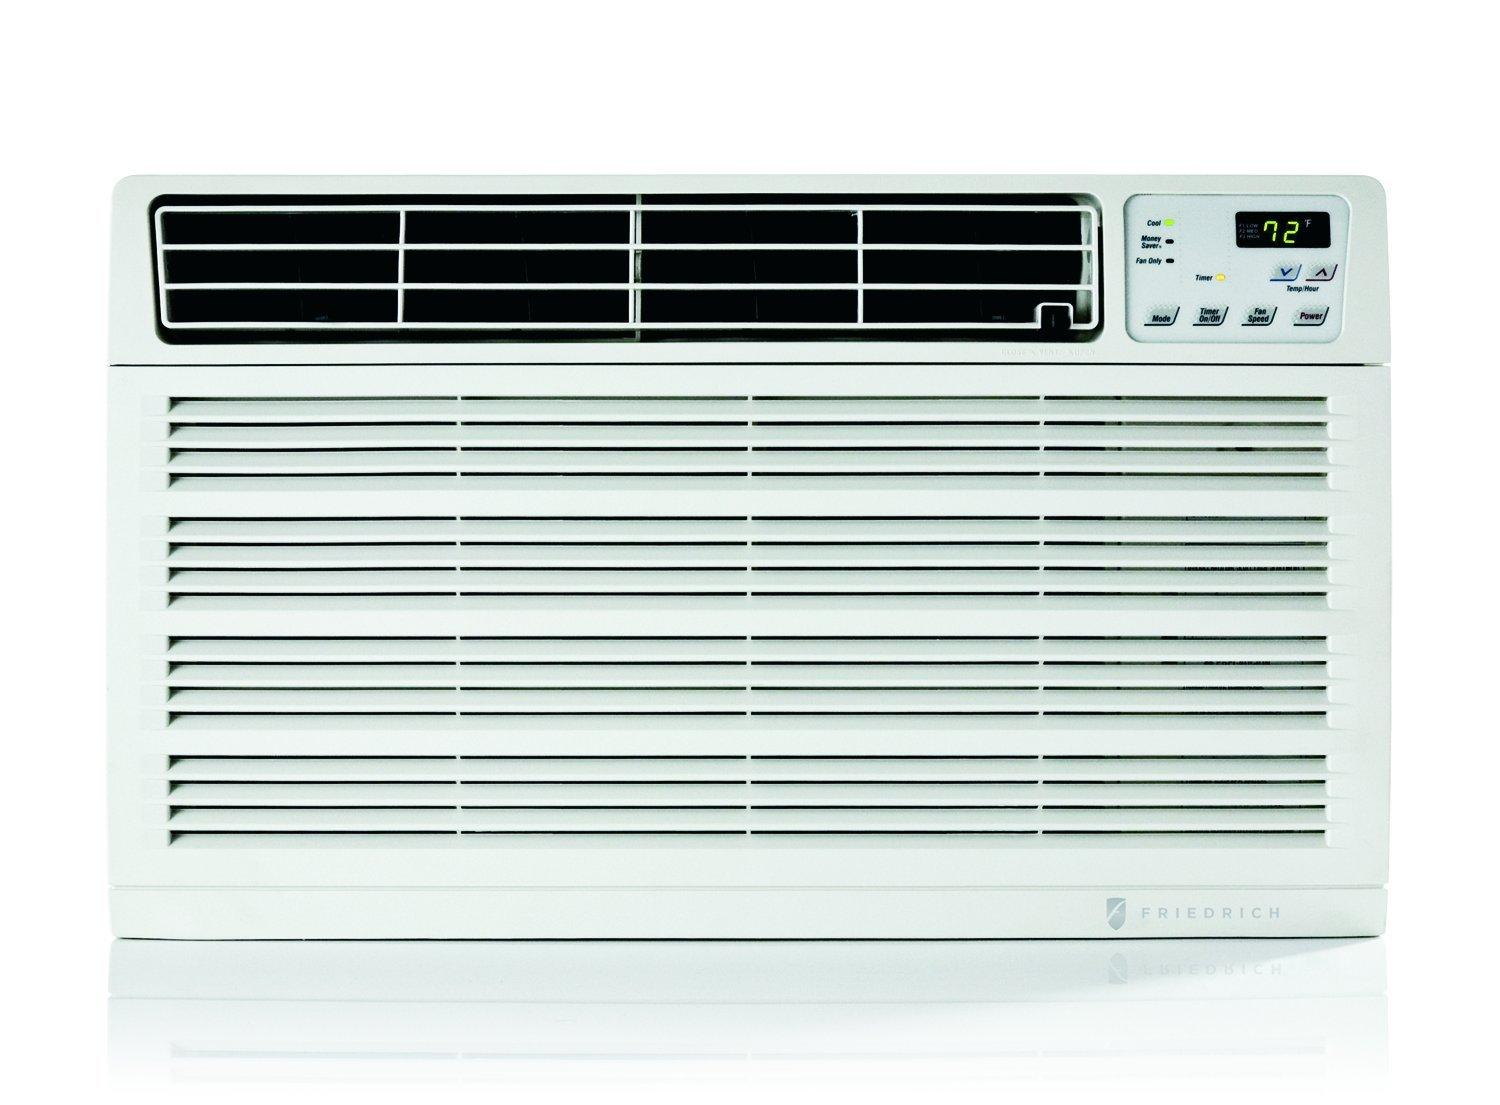 #627D42 US12D30B Friedrich Us12d30b Uni Fit Series Best 10603 Air Conditioner Wall Sleeve photos with 1500x1105 px on helpvideos.info - Air Conditioners, Air Coolers and more